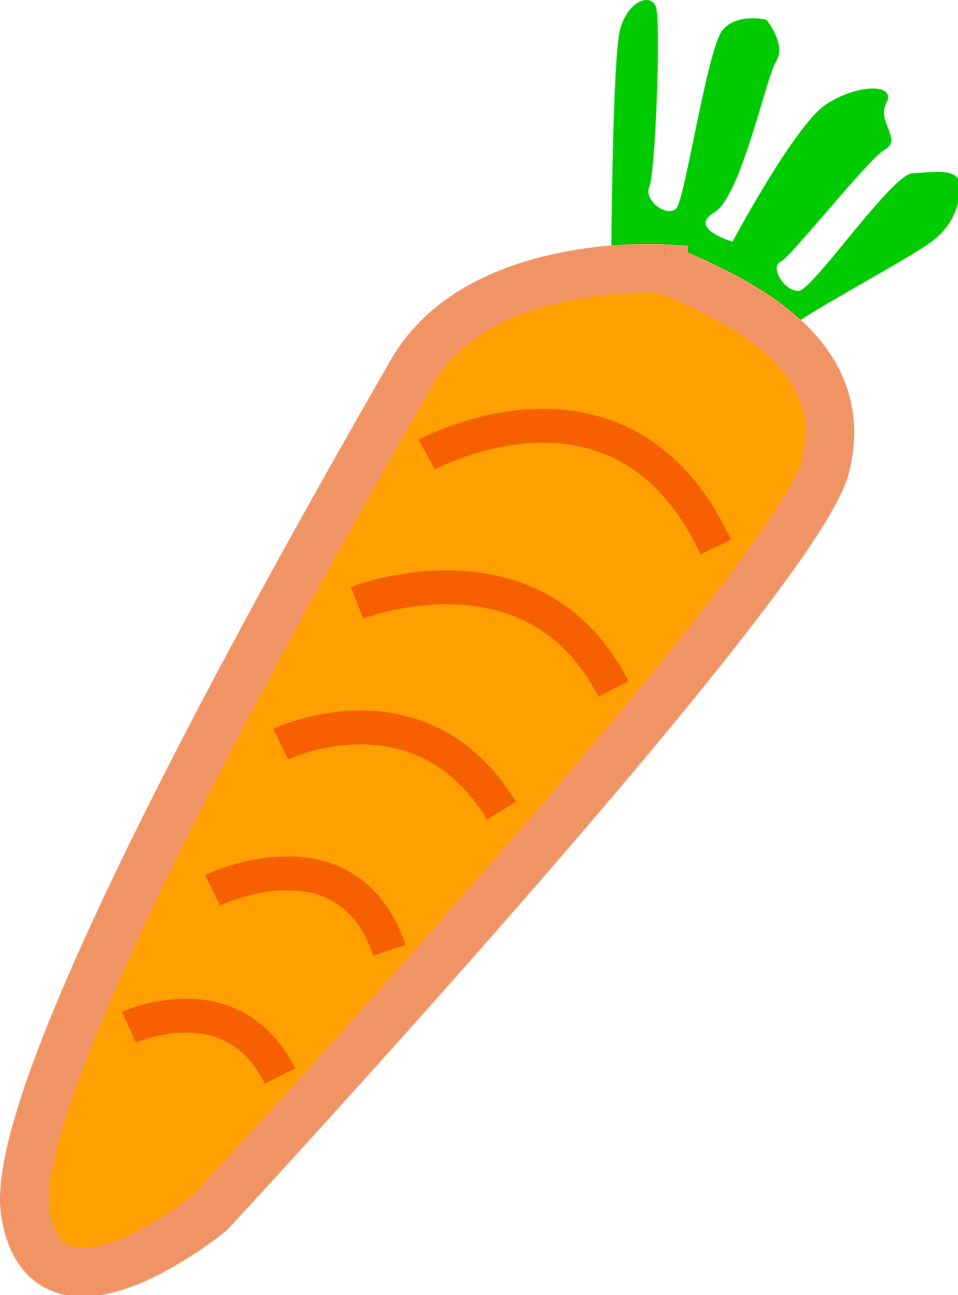 Free stock photo illustration. Foods clipart carrot